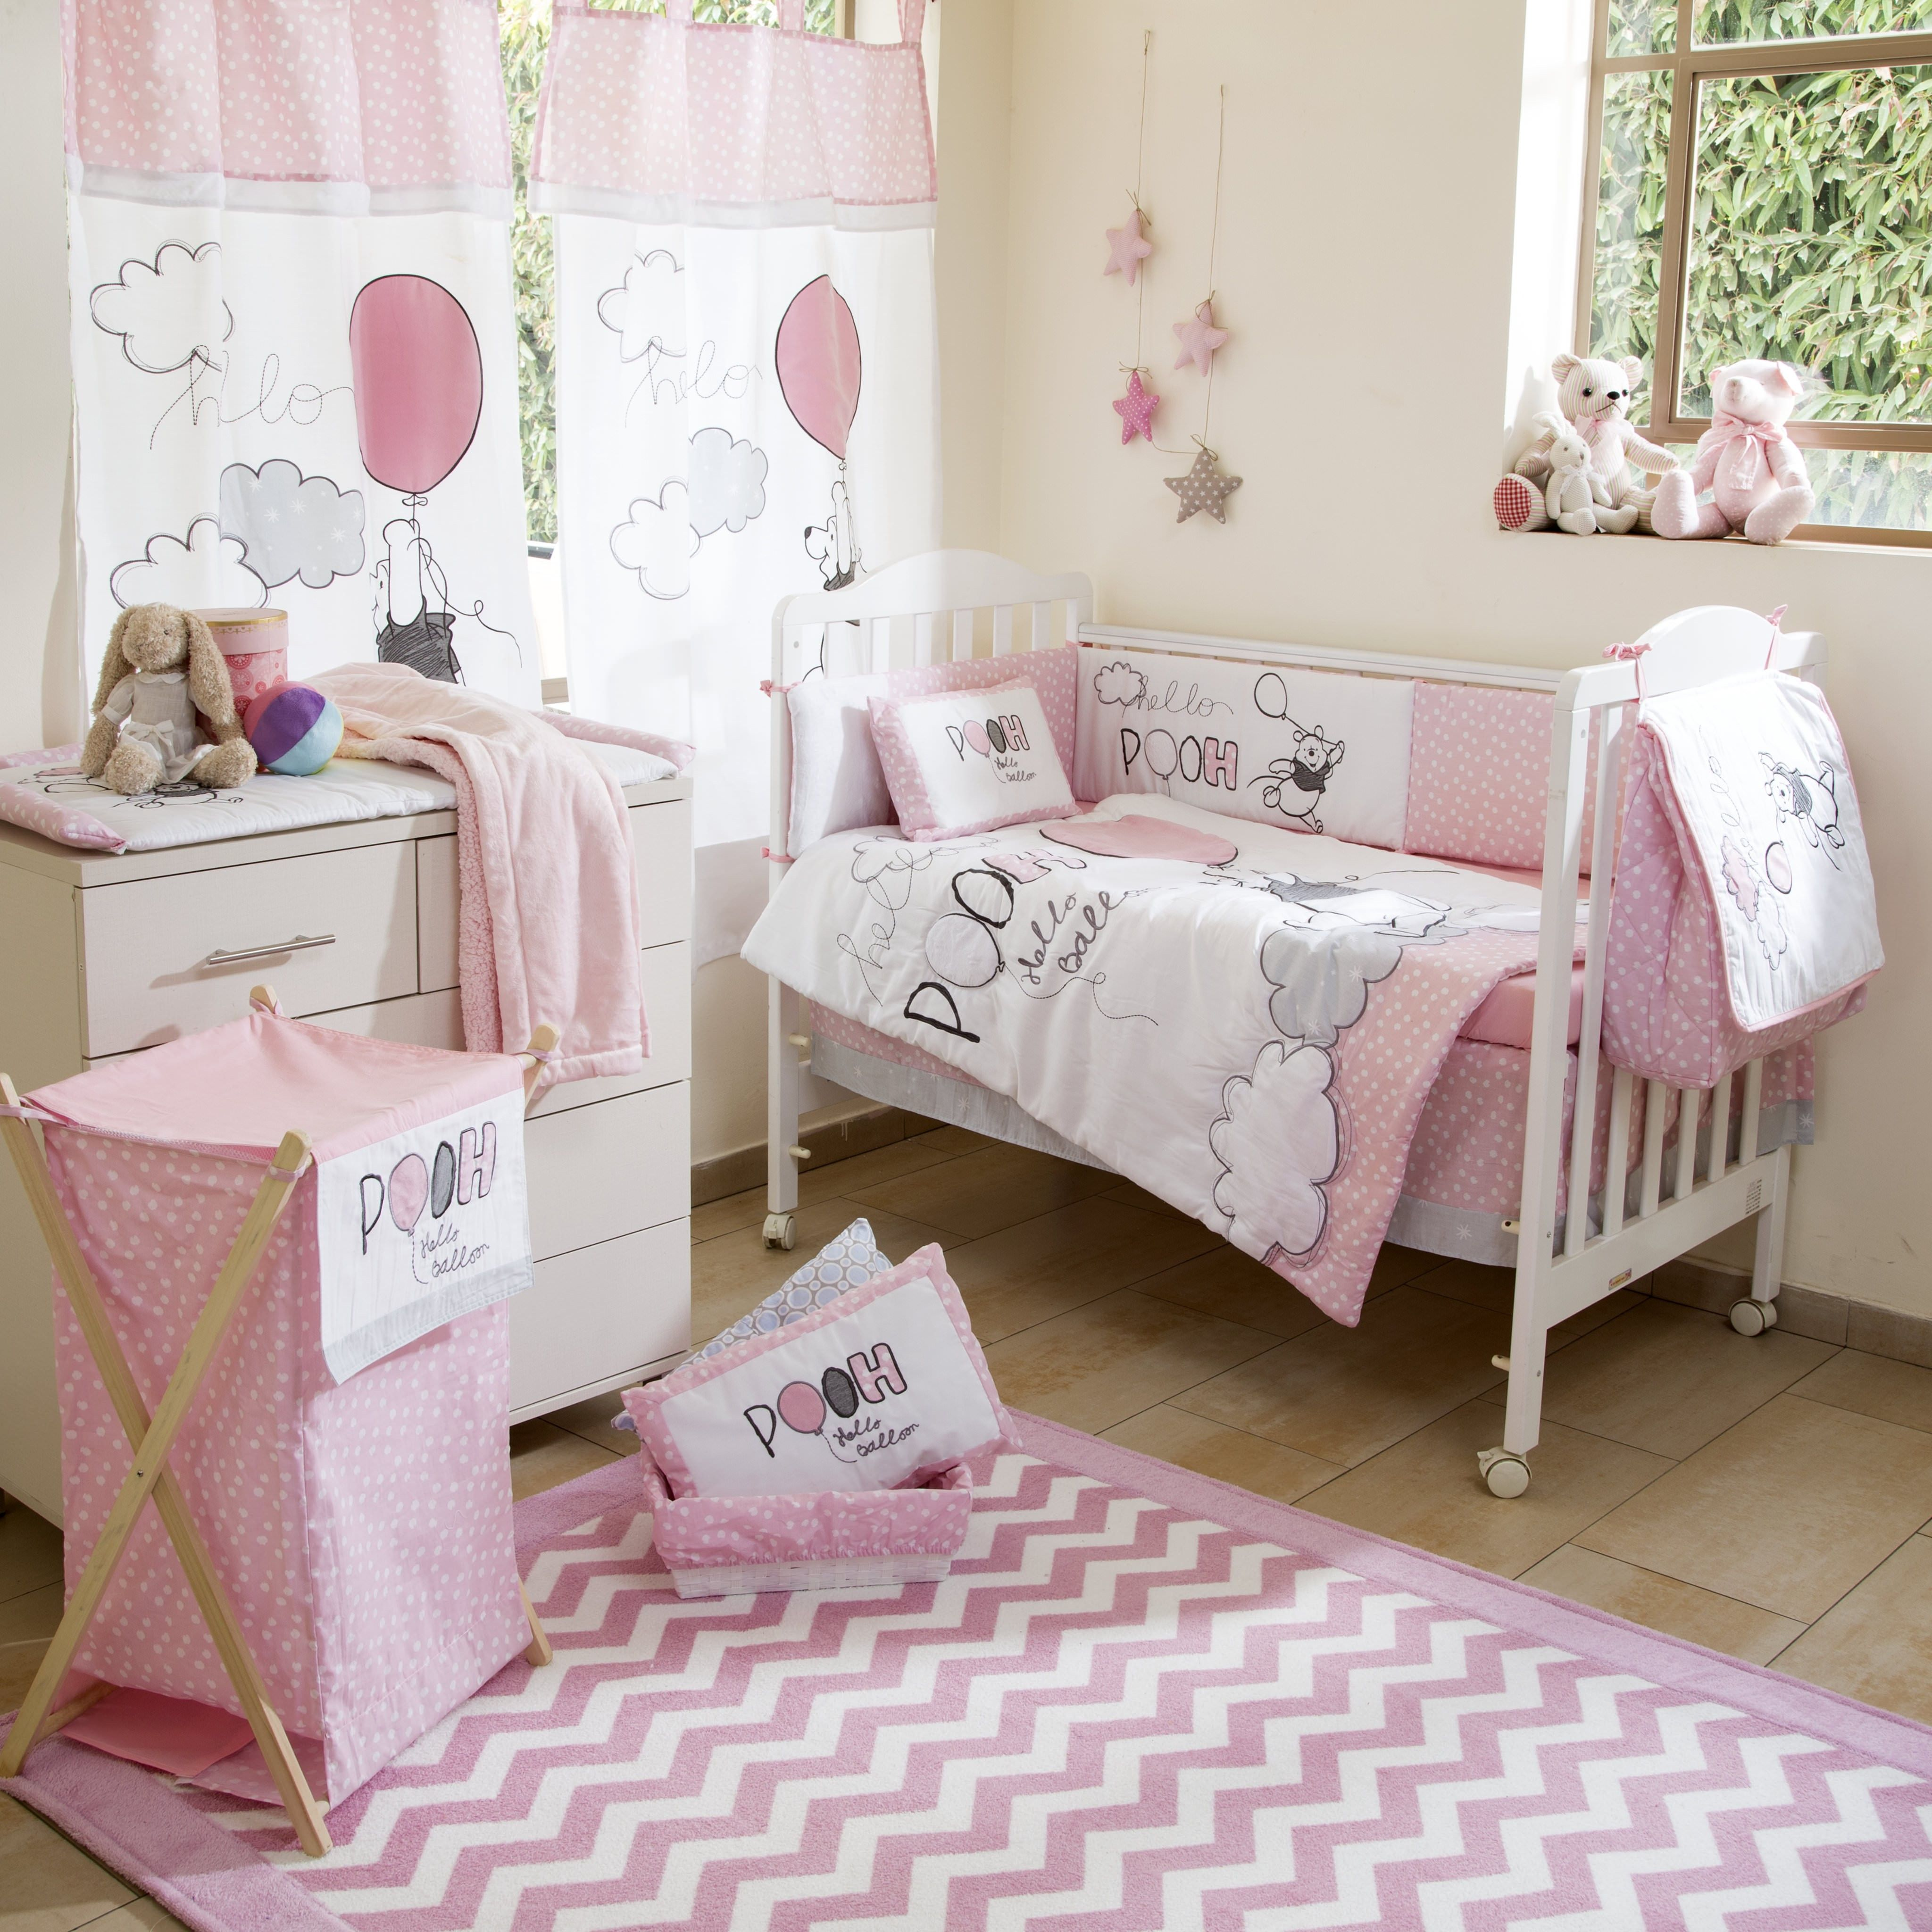 Baby Bedding Sets Pink Winnie The Pooh Play Crib Collection 4 Pc Set Nursery